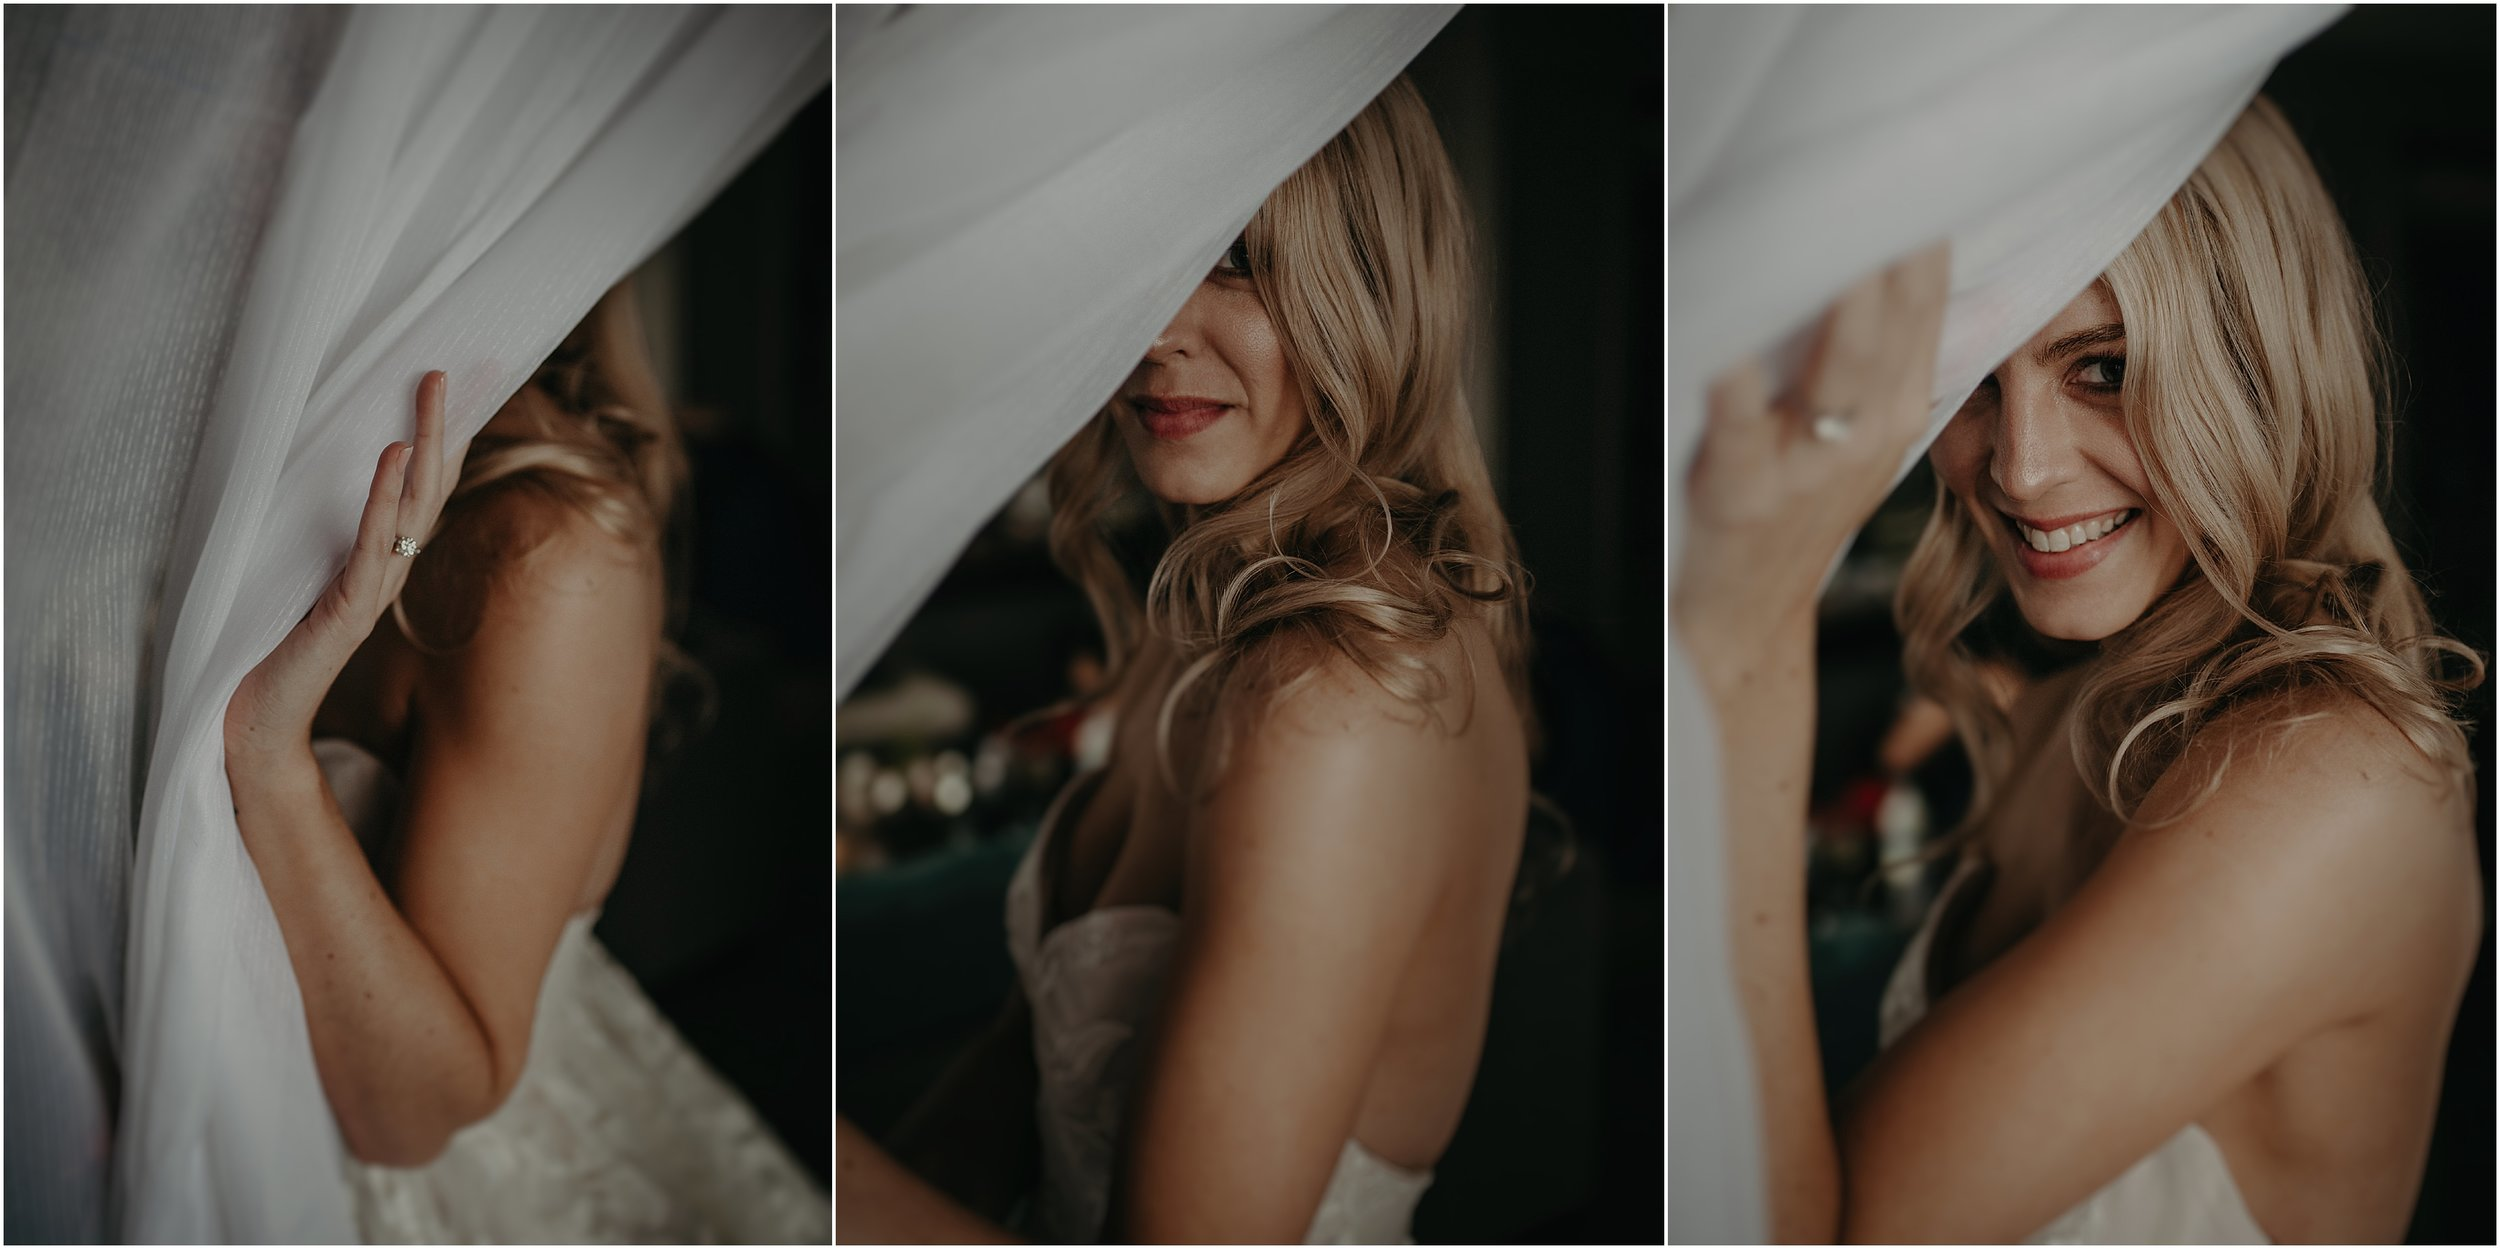 The bride peeks through the curtain's of the hotel room